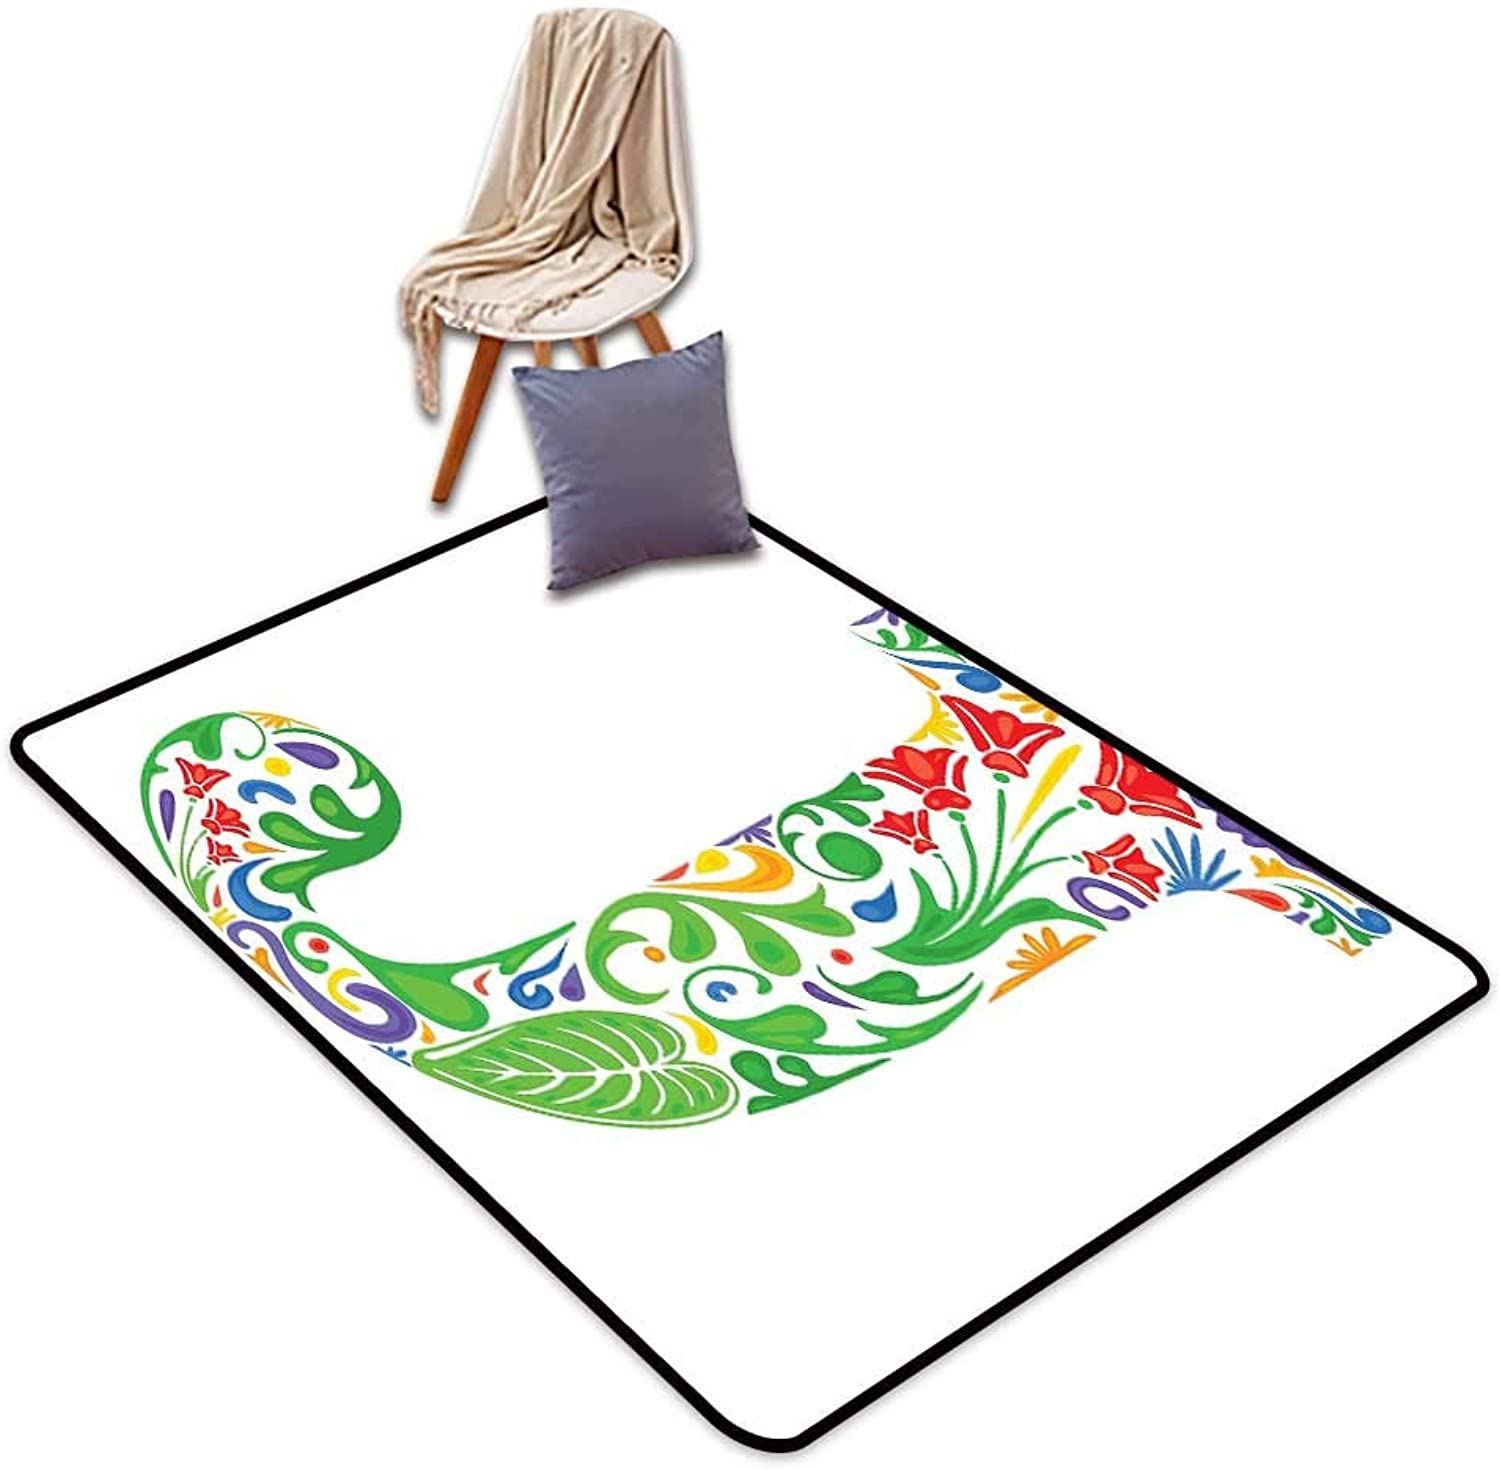 Indoor Super Absorbs Mud Doormat Letter J Initial Capital J with Tropical Nature Elements Leaves and Flowers Abstract Swirls W4'xL6' Suitable for Family